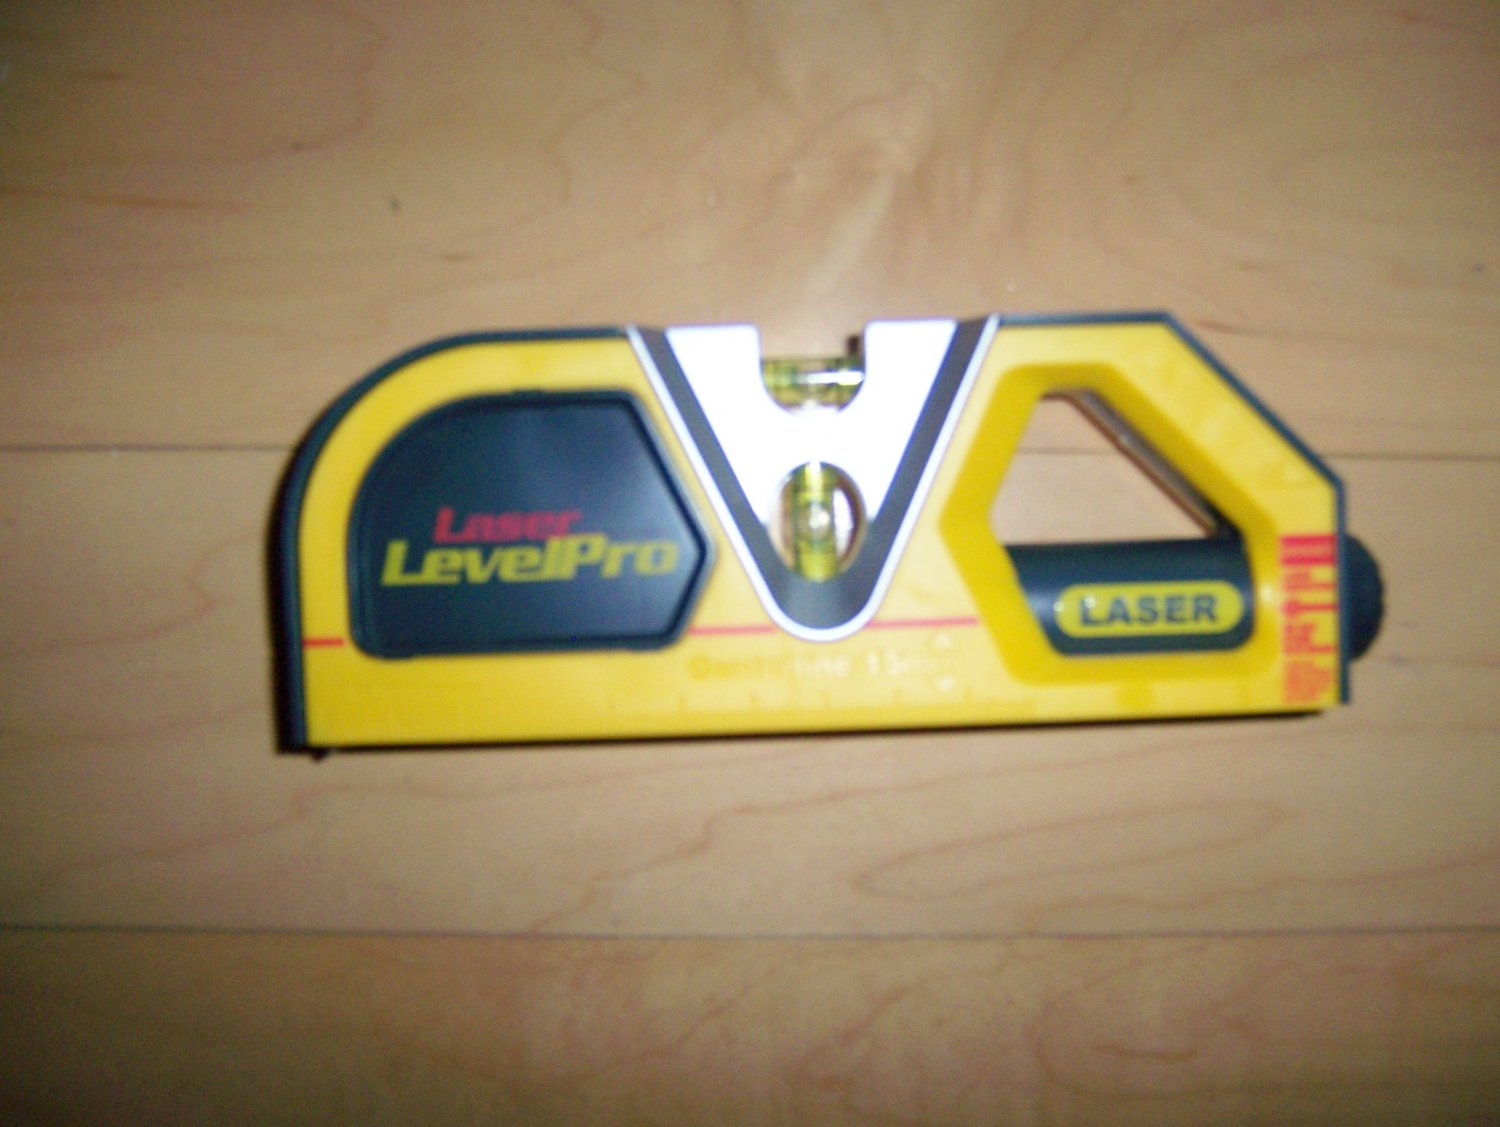 Lazer Pro Level With 8 Ft Built In Rule  BNK1184